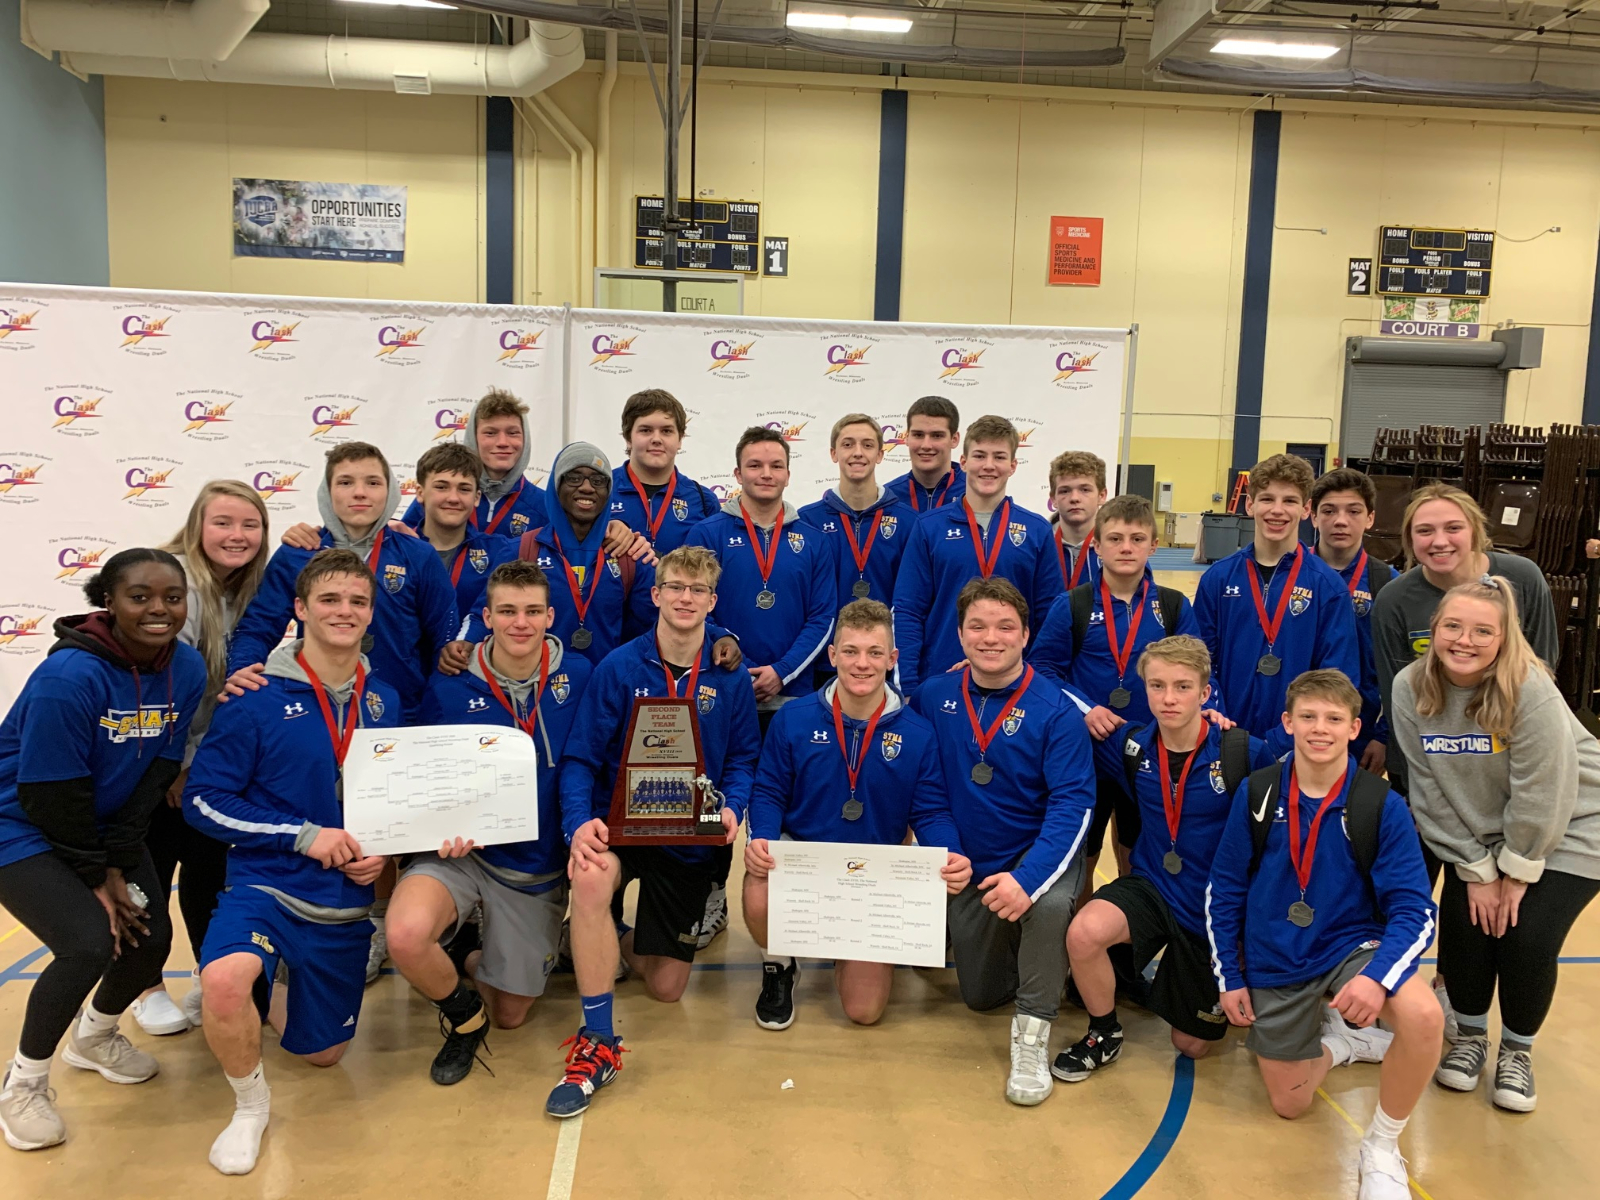 Runner-Ups at The Clash National Duals